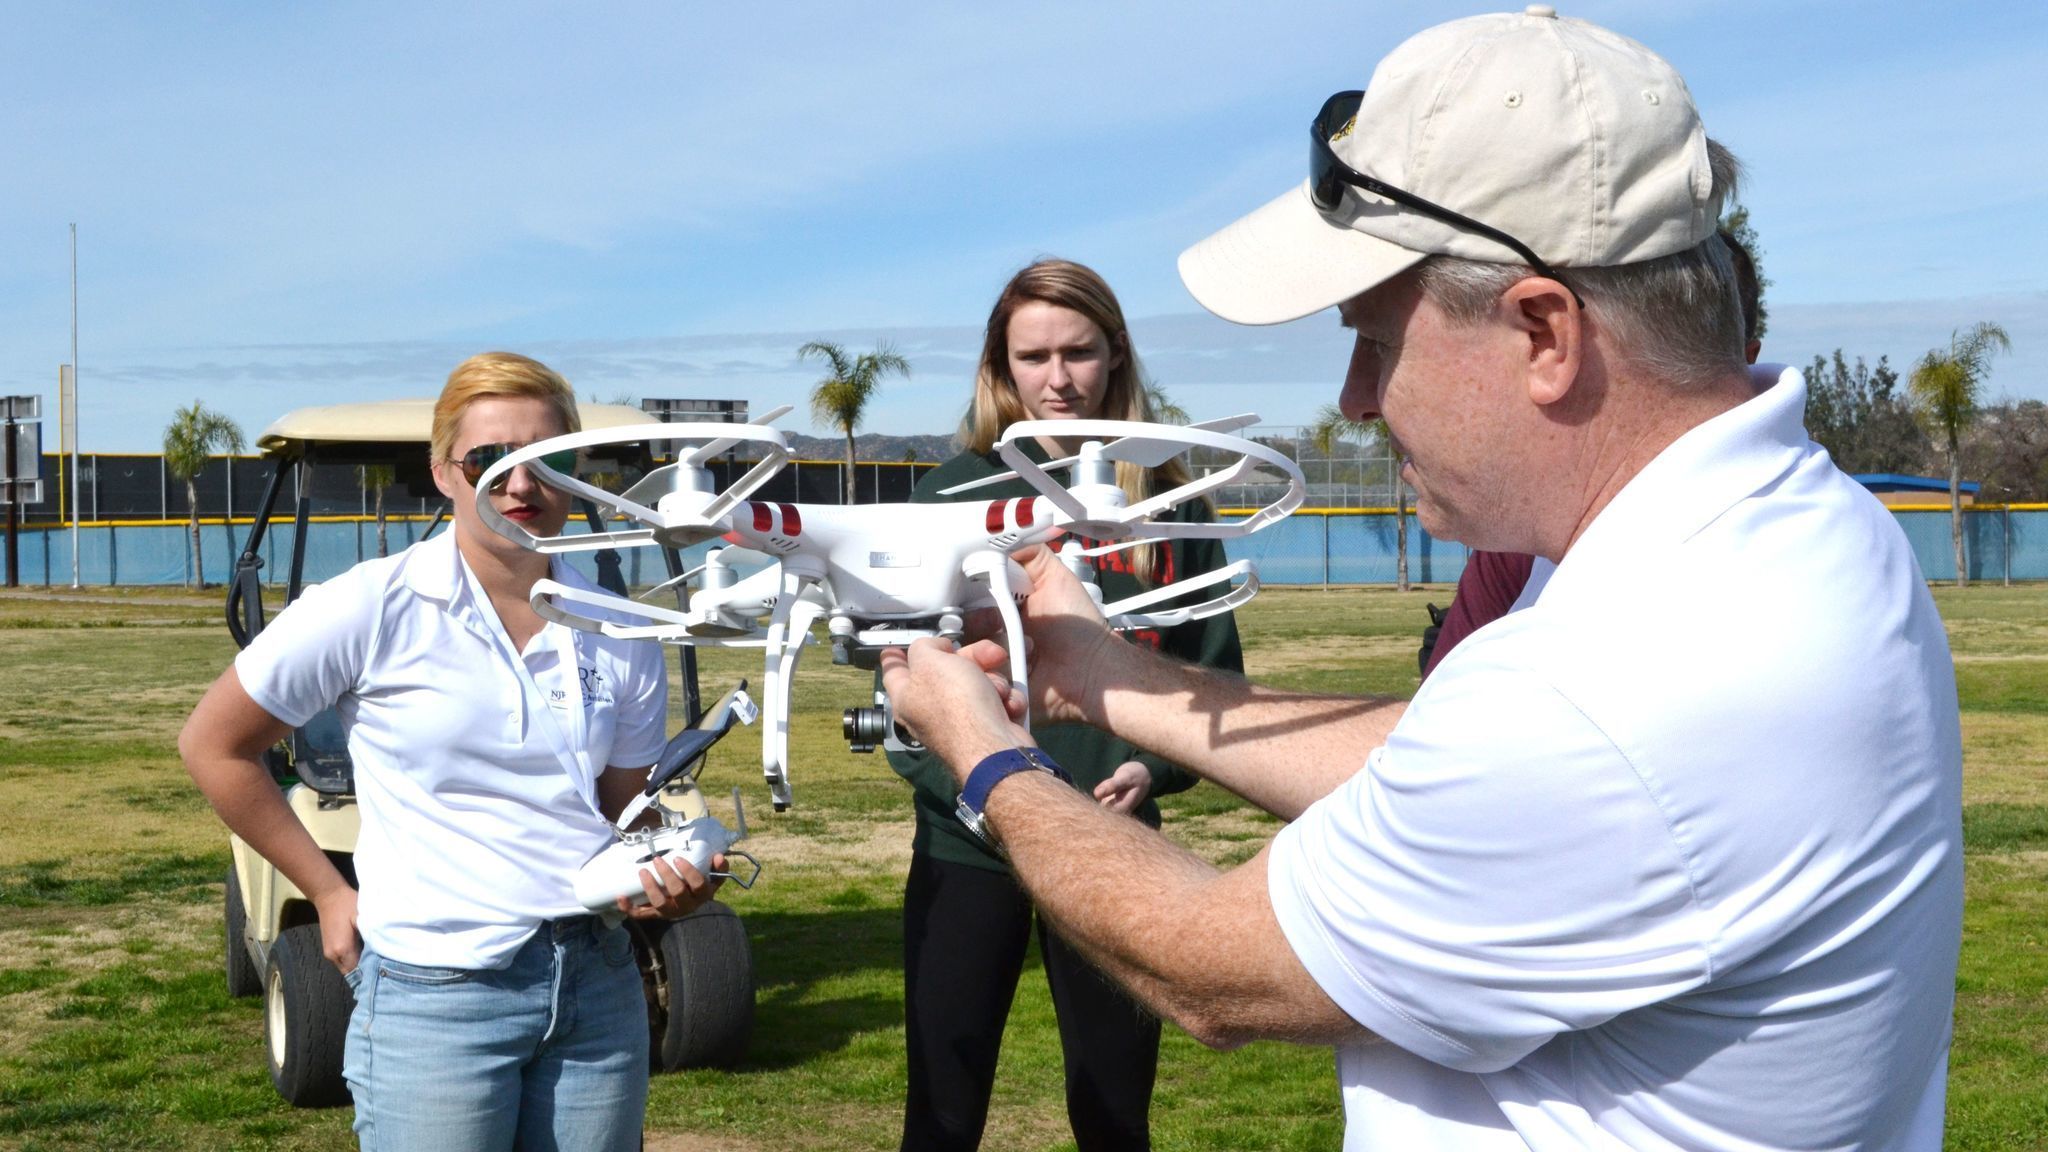 NJROTC Commander Brad Davis shows features of Bulldog ONE, Ramona High's new drone, as two of his students, Alaina Sill, left, and Emma Hopperton, listen.